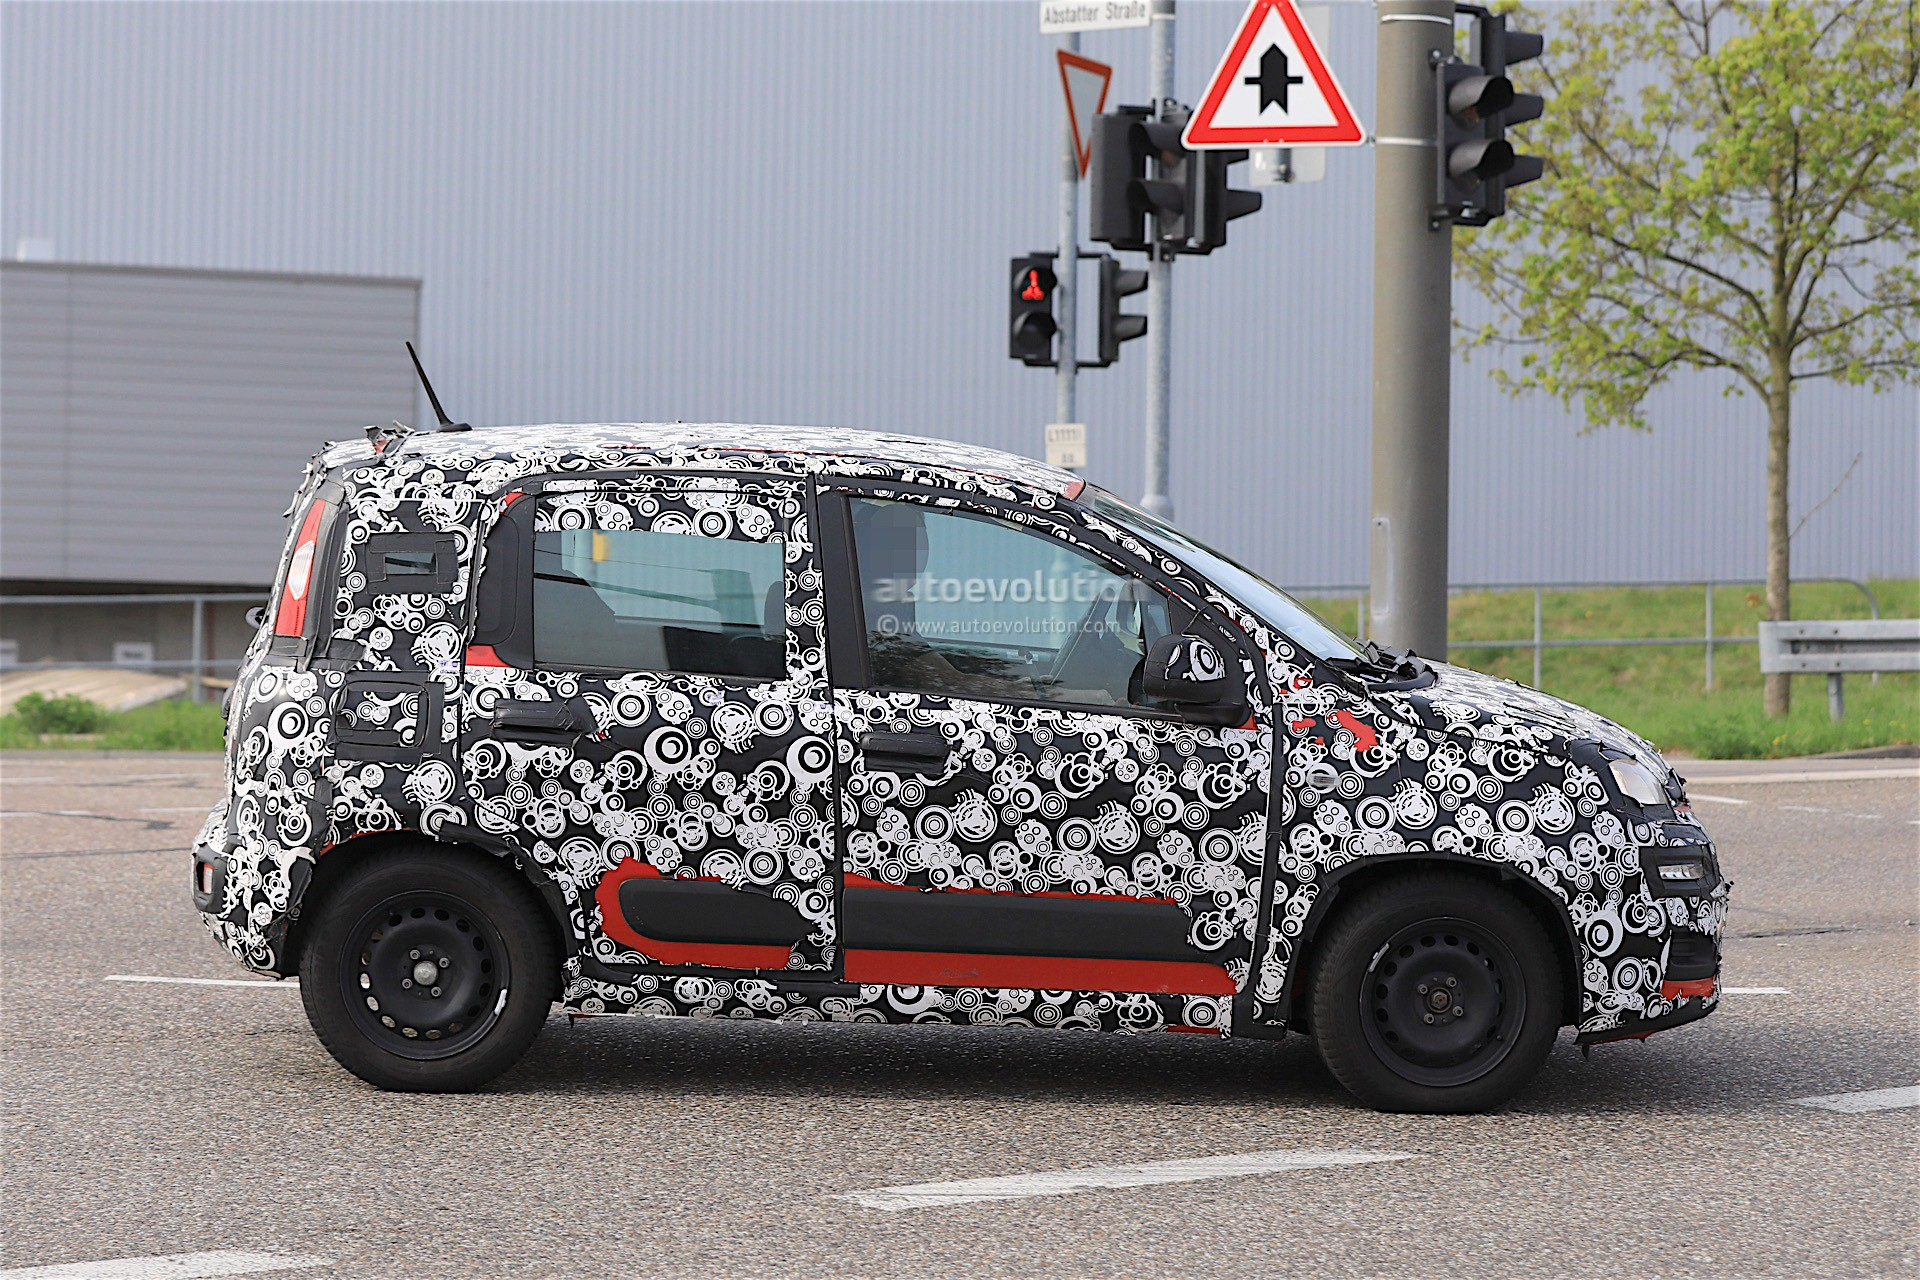 2018 fiat panda facelift spied testing in germany no major changes expected autoevolution. Black Bedroom Furniture Sets. Home Design Ideas